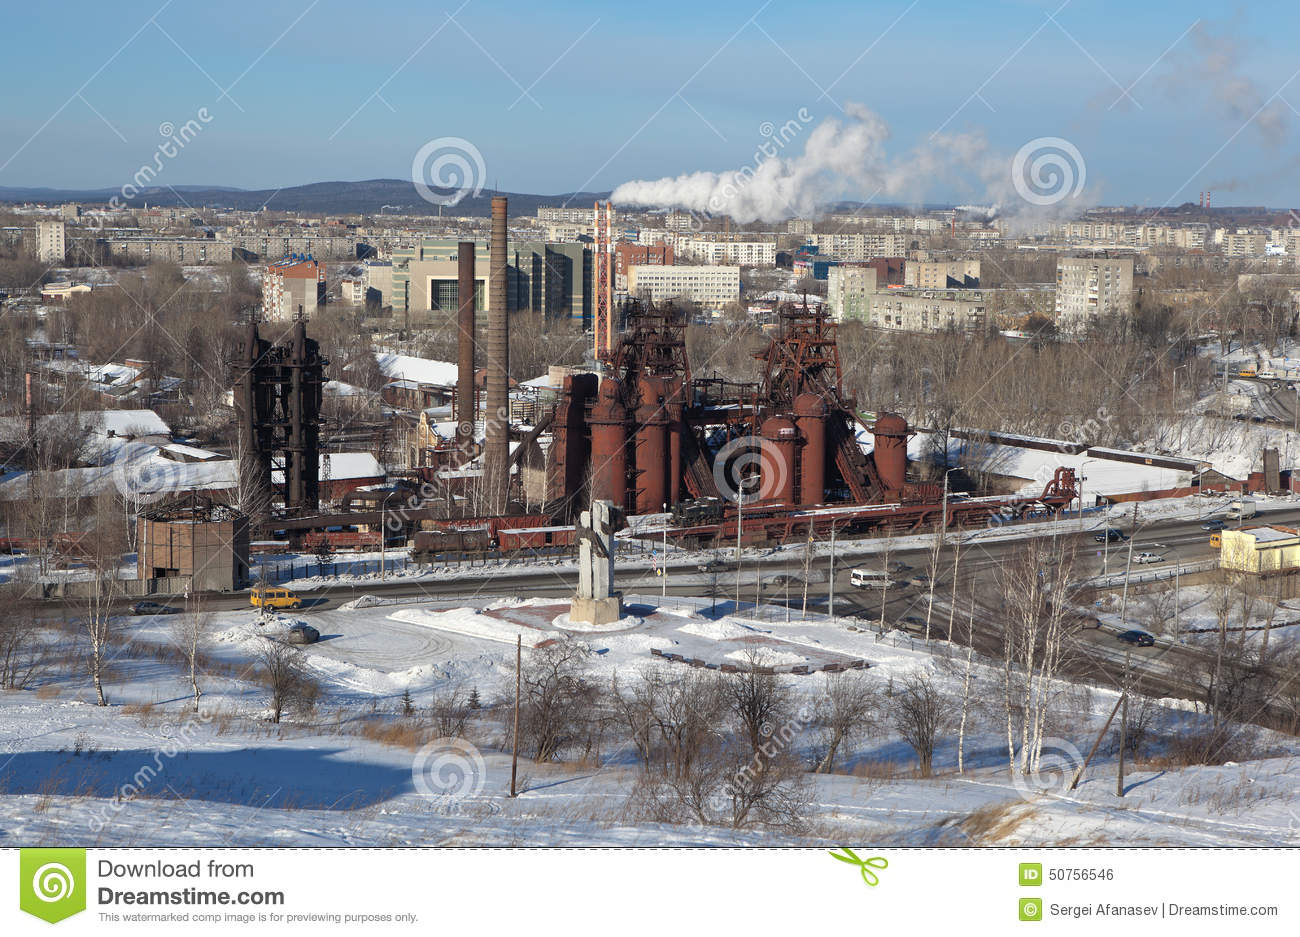 Is it worth from Nizhny Tagil to move to Rostov-on-Don 35